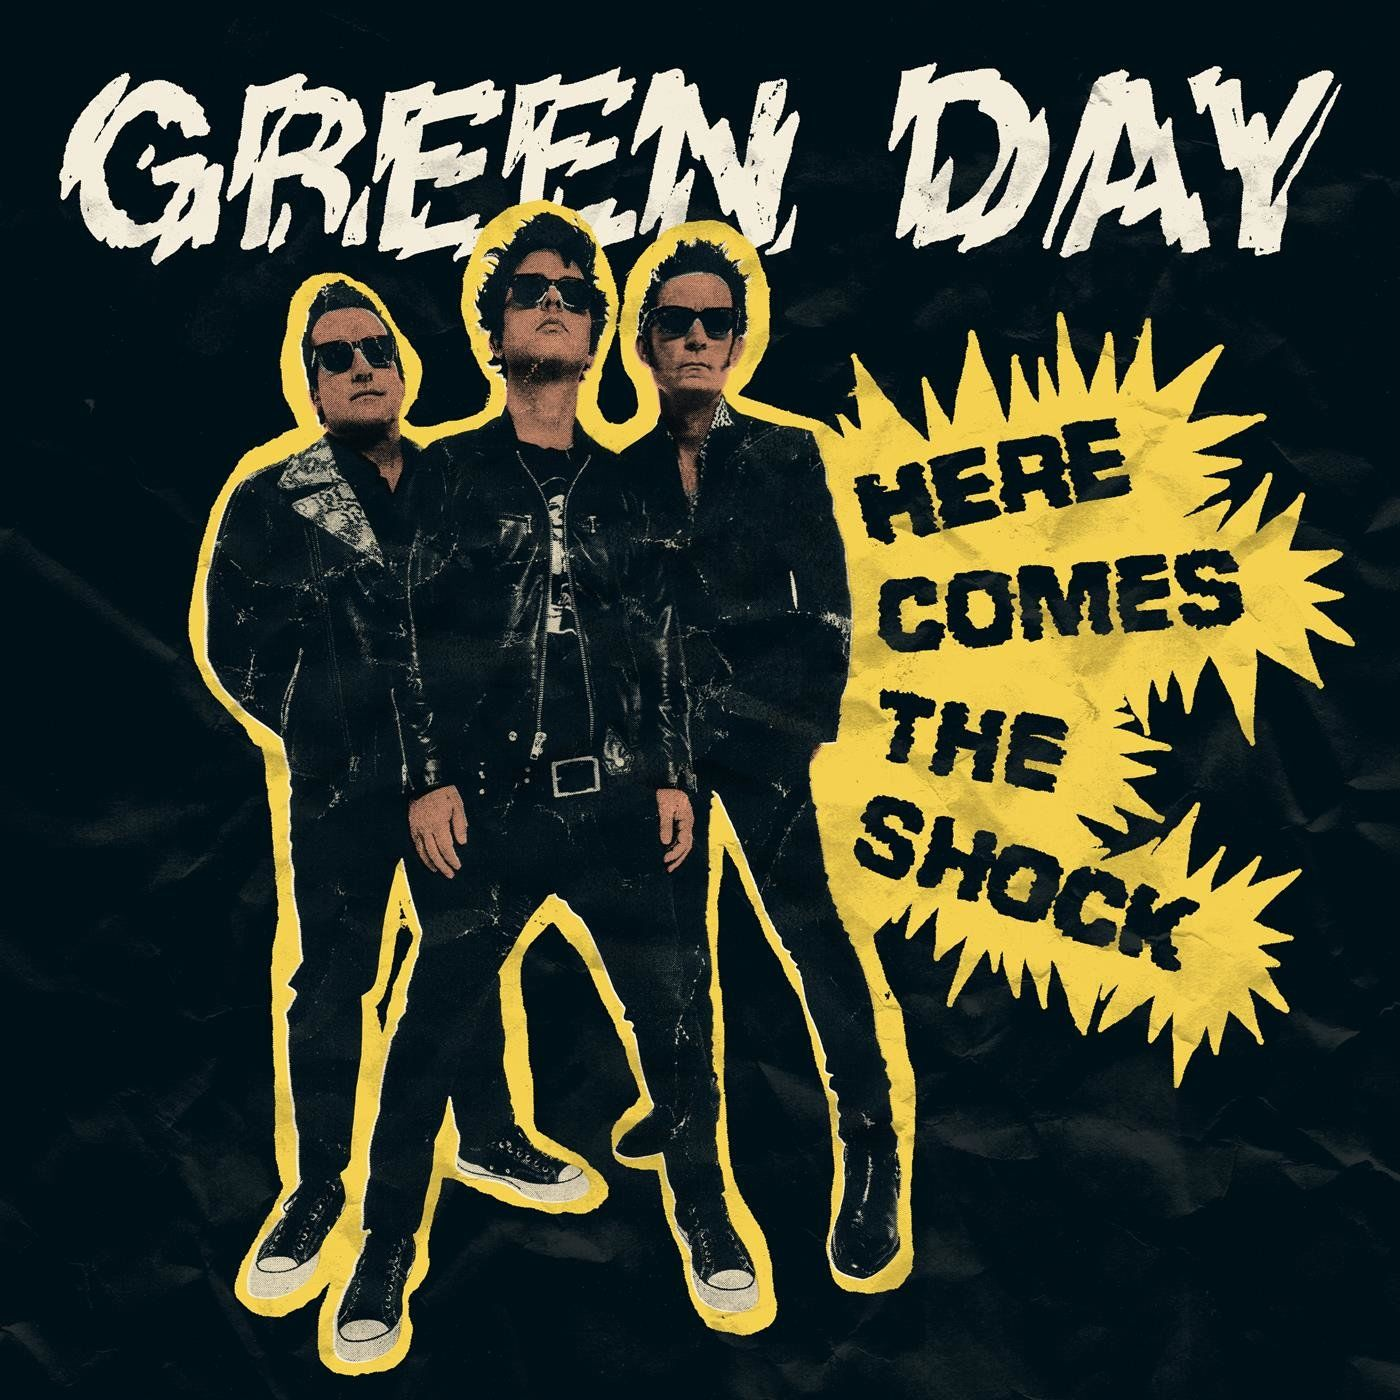 Green Day - Here Comes The Shock [single] (2021)